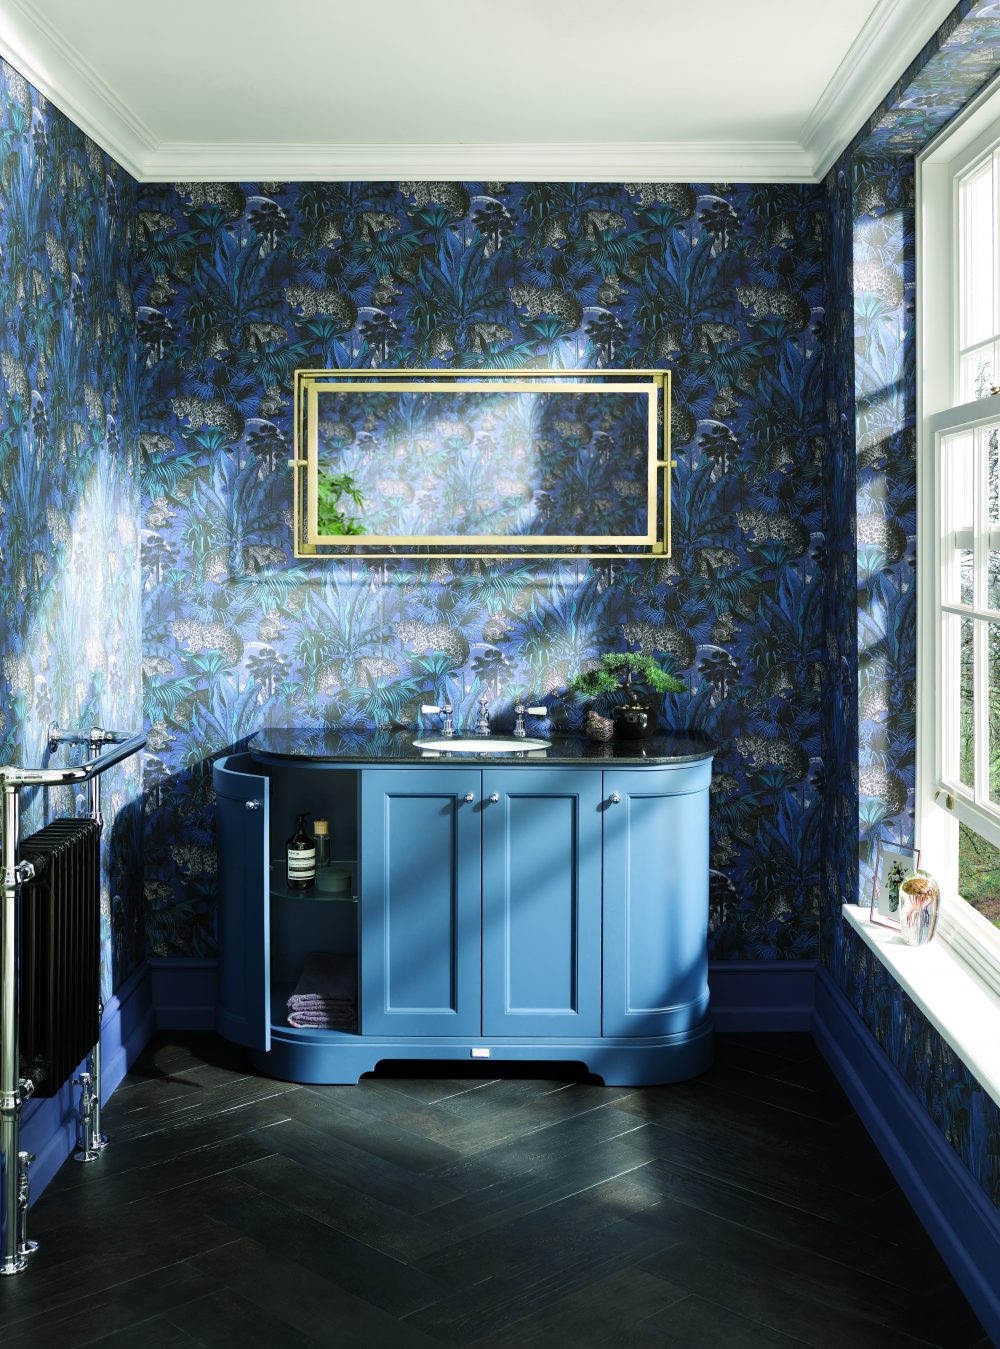 The Open Stiffkey Blue 1200 Curved Unit with Black Top with Divine Savages Wallpaper - Nocturnal Faunacation